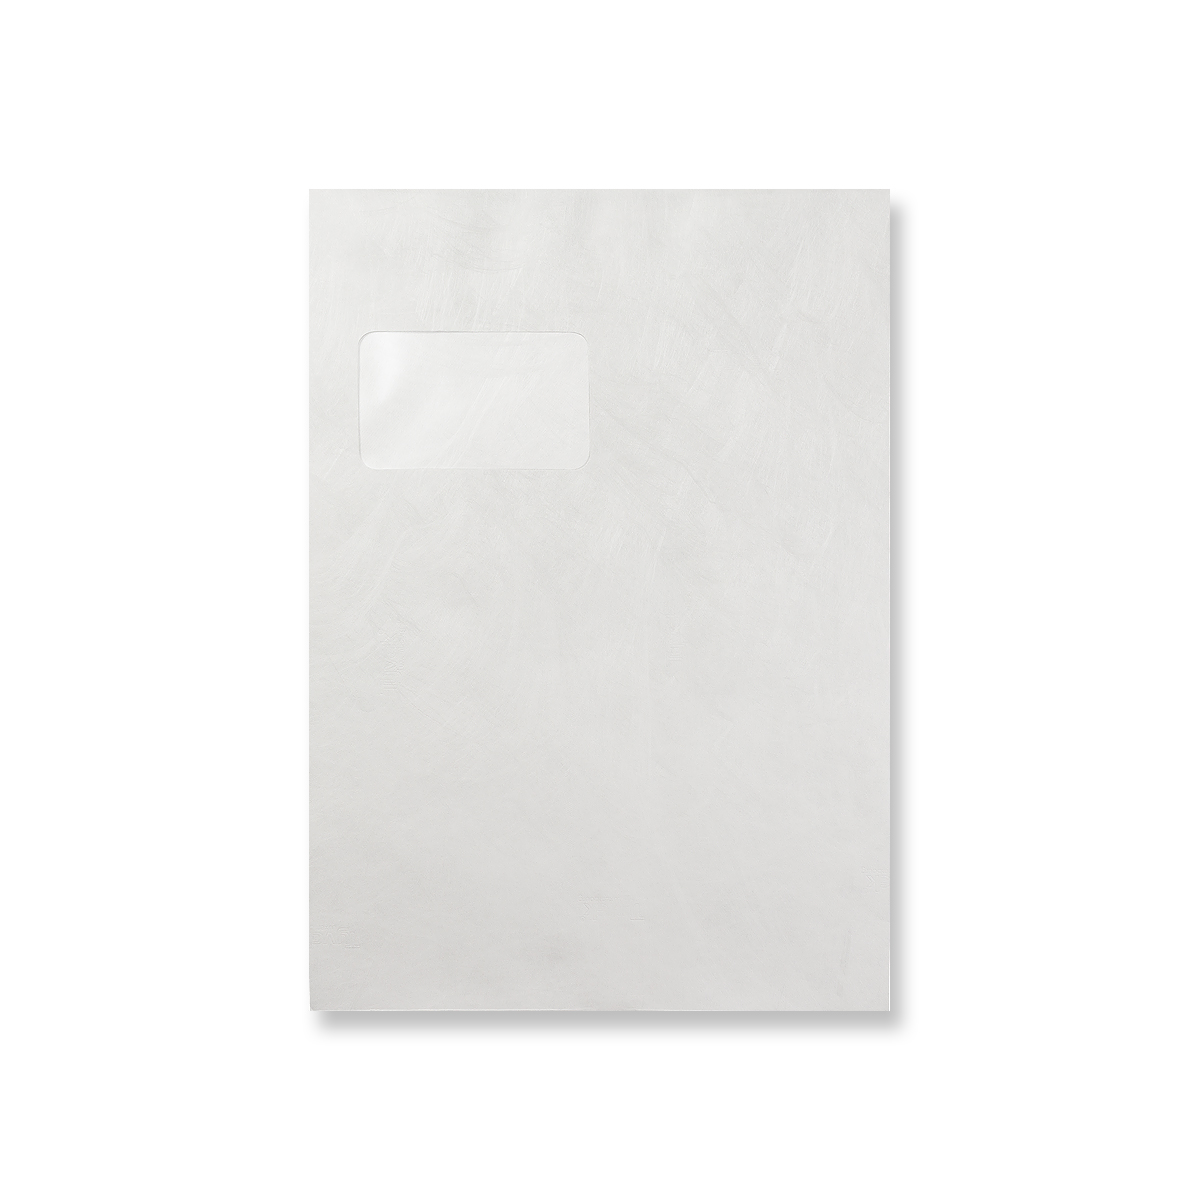 C4 WHITE TYVEK WINDOW ENVELOPES